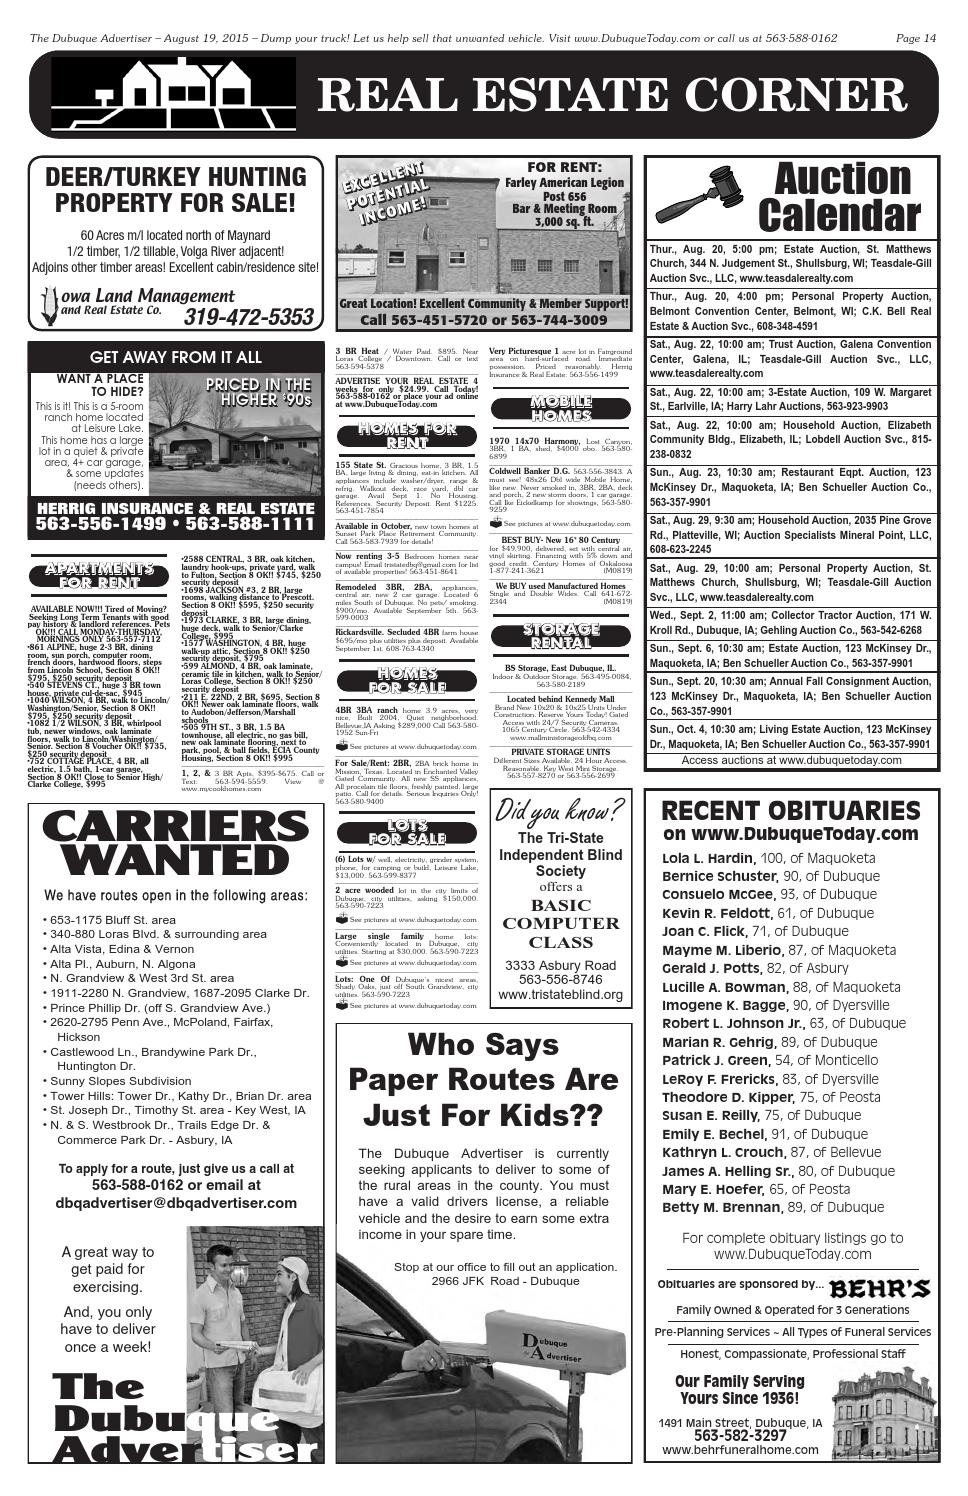 The Dubuque Advertiser August 19 2015 By